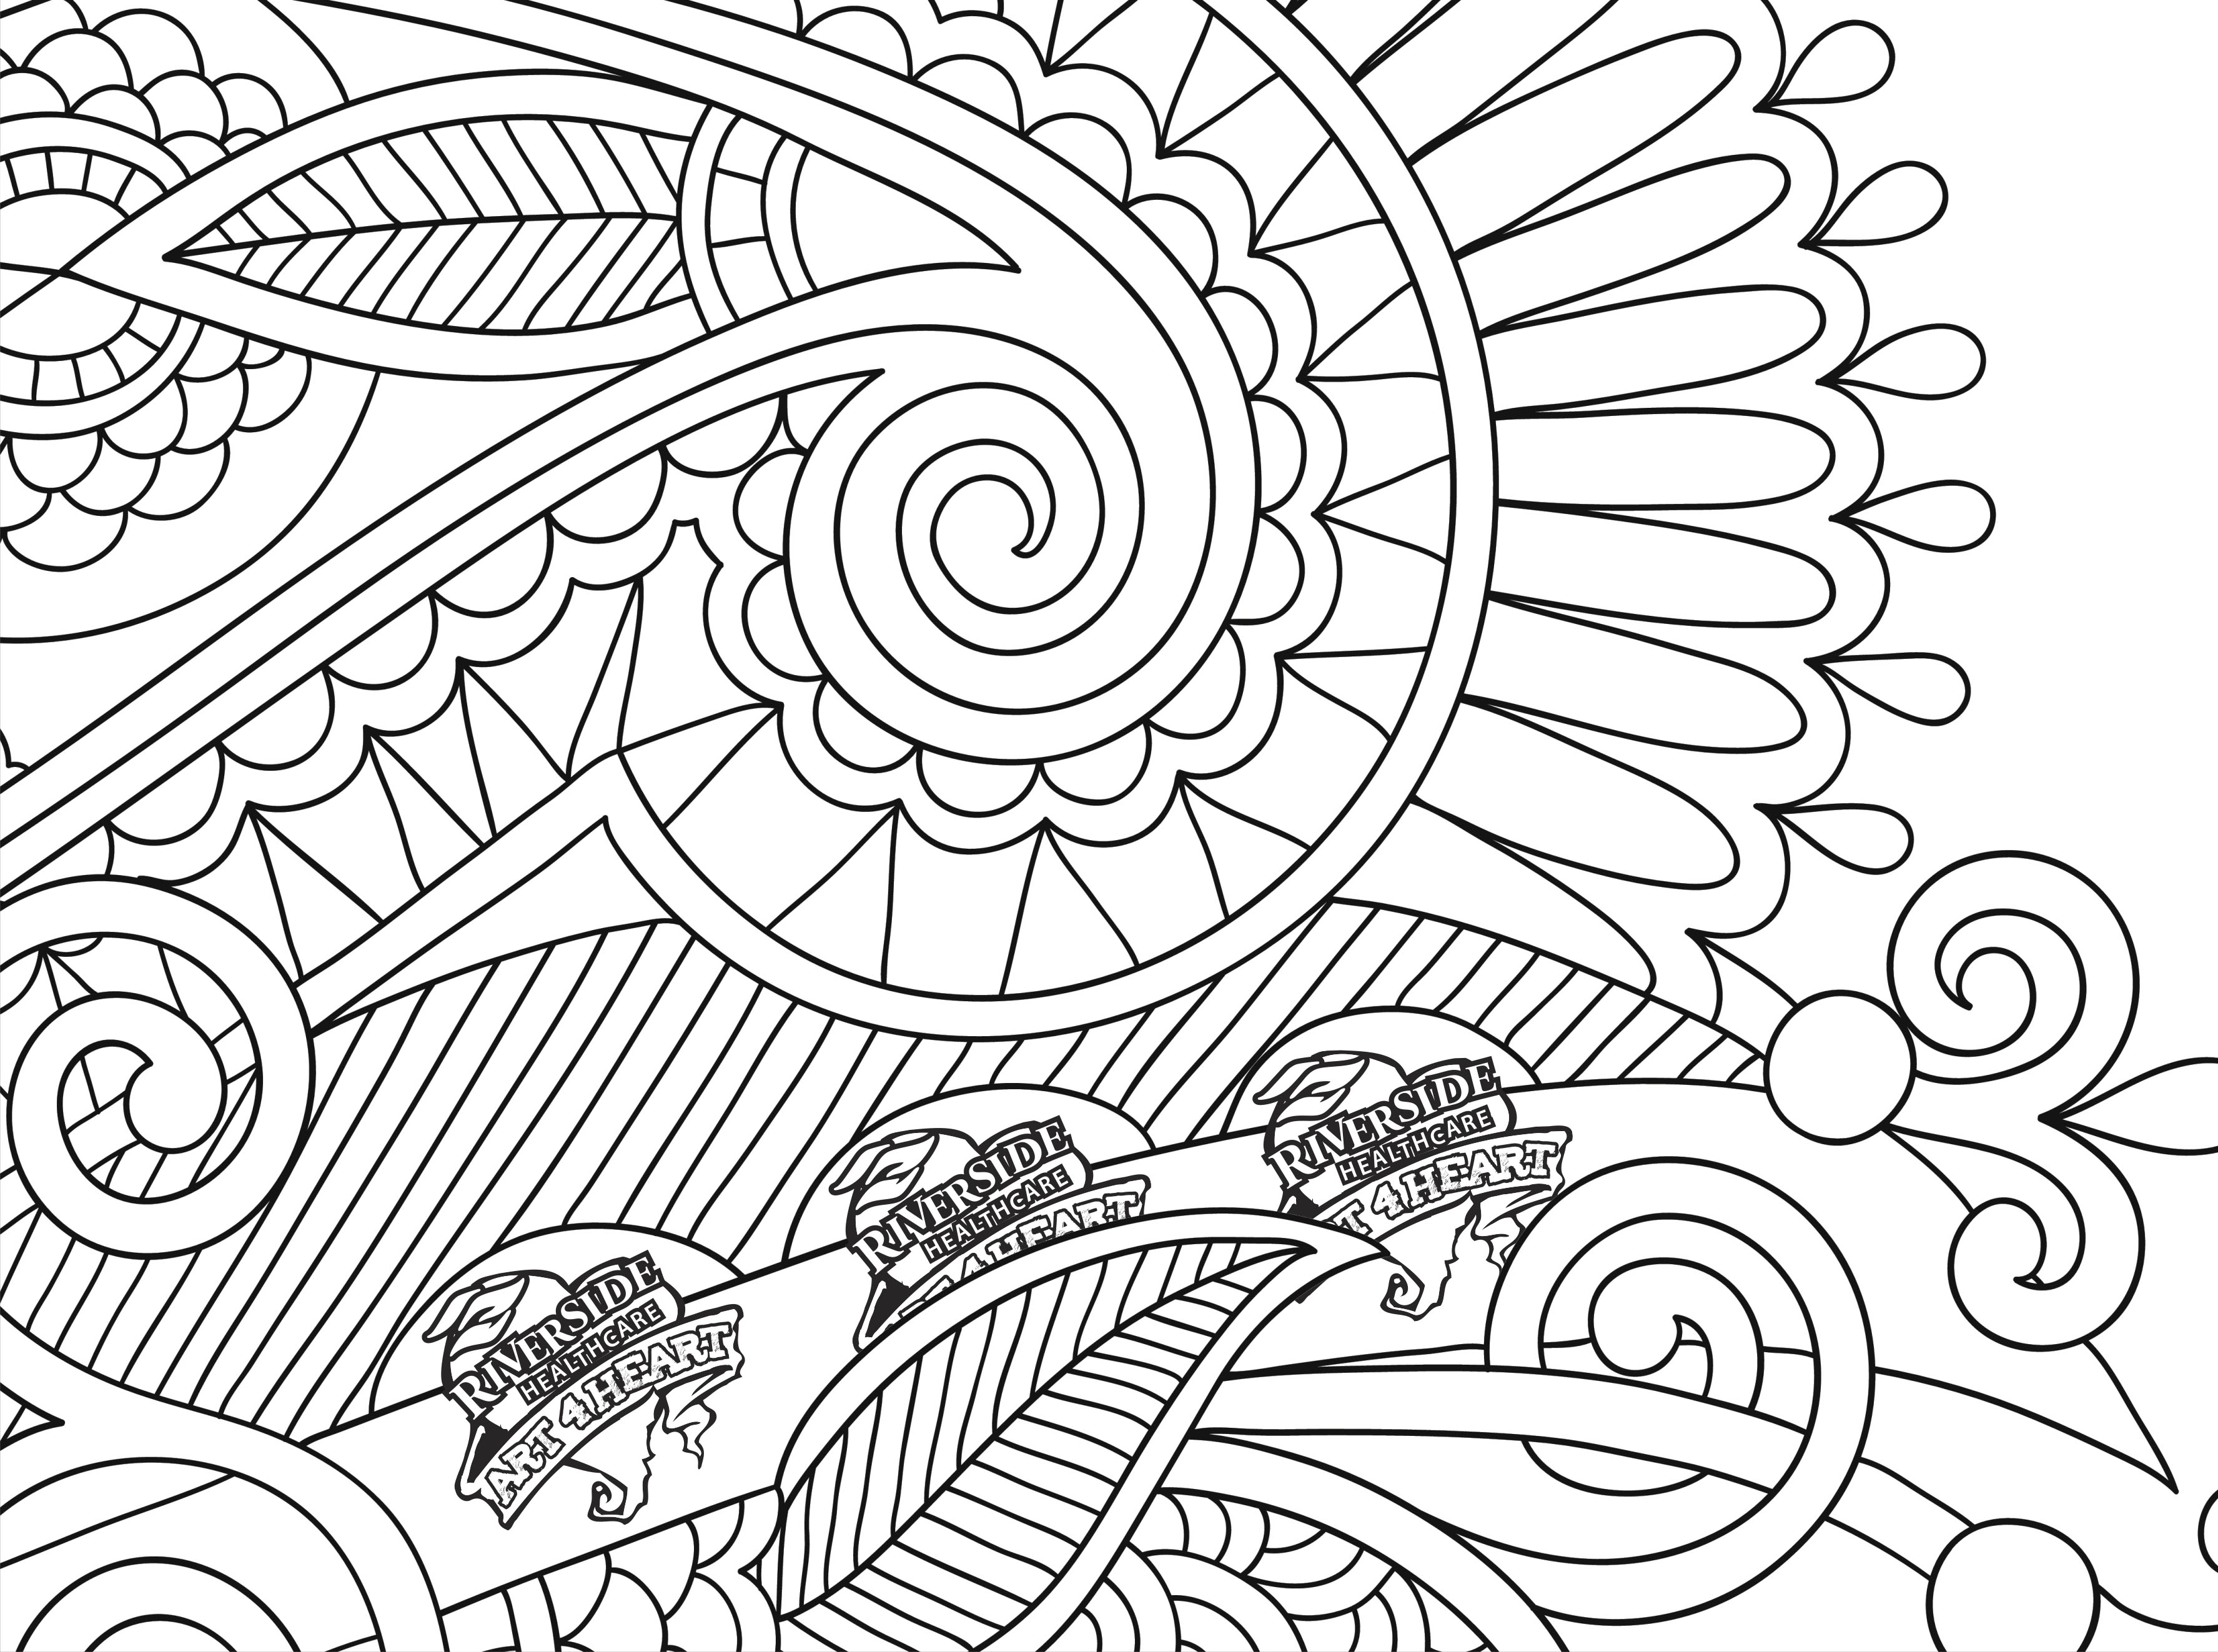 free printable coloring pages for adults free adult coloring pages 35 gorgeous printable coloring coloring adults printable for pages free